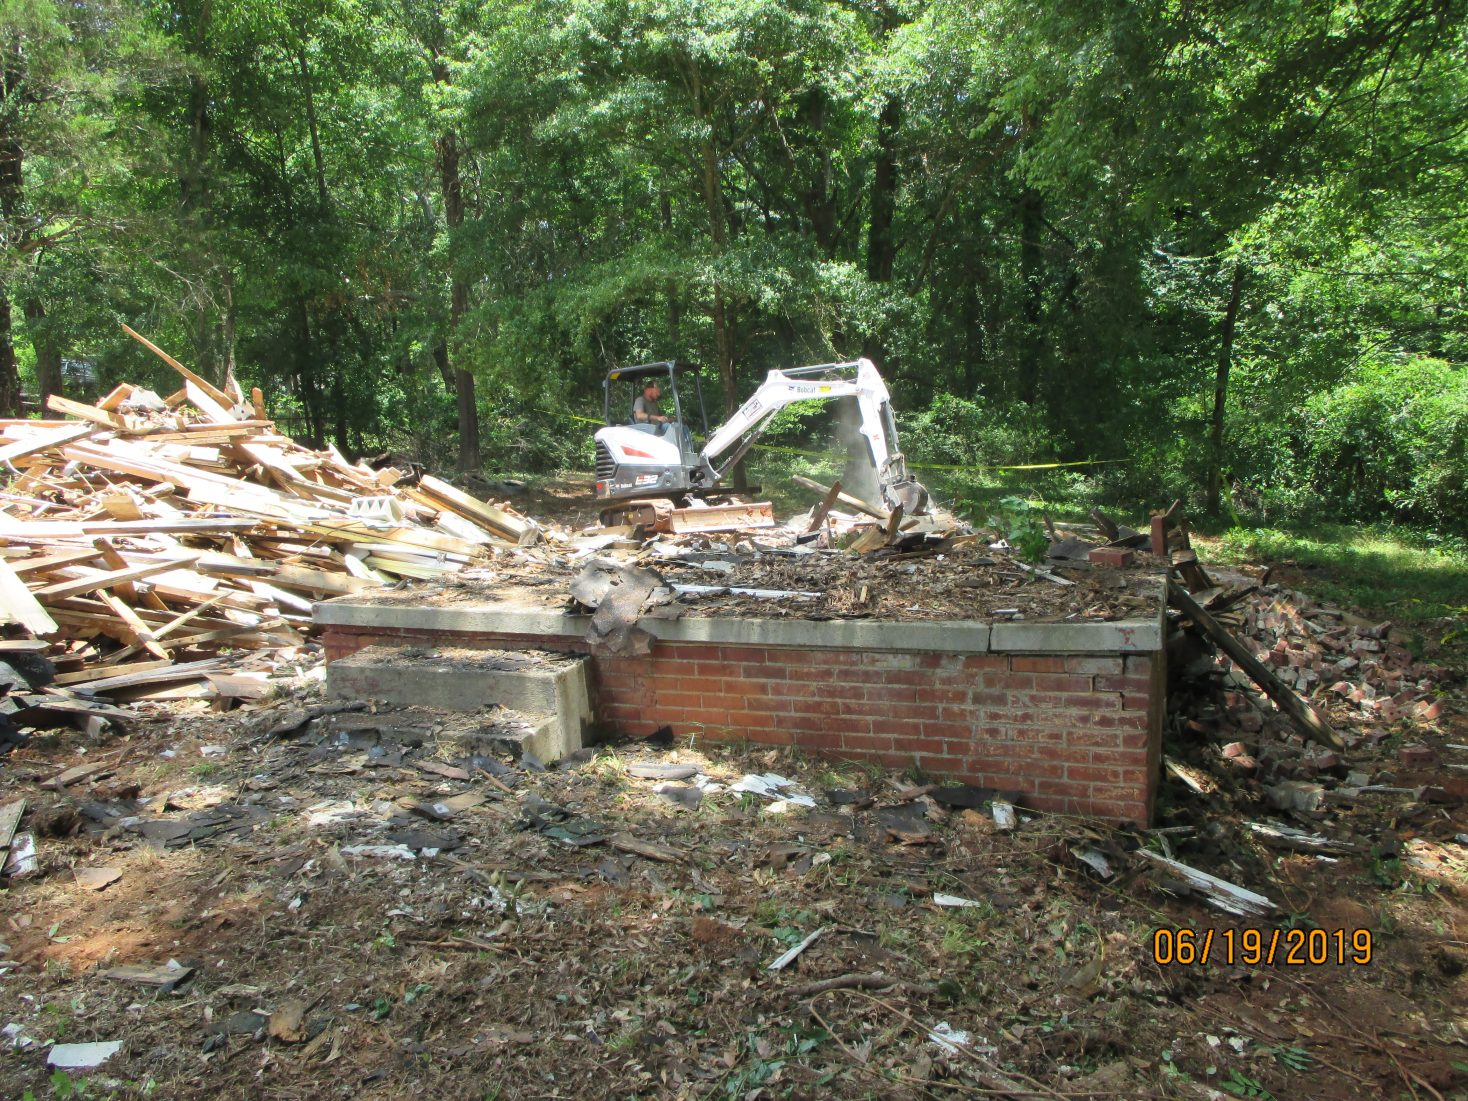 Clean up takes place at 511 Lebanon Road